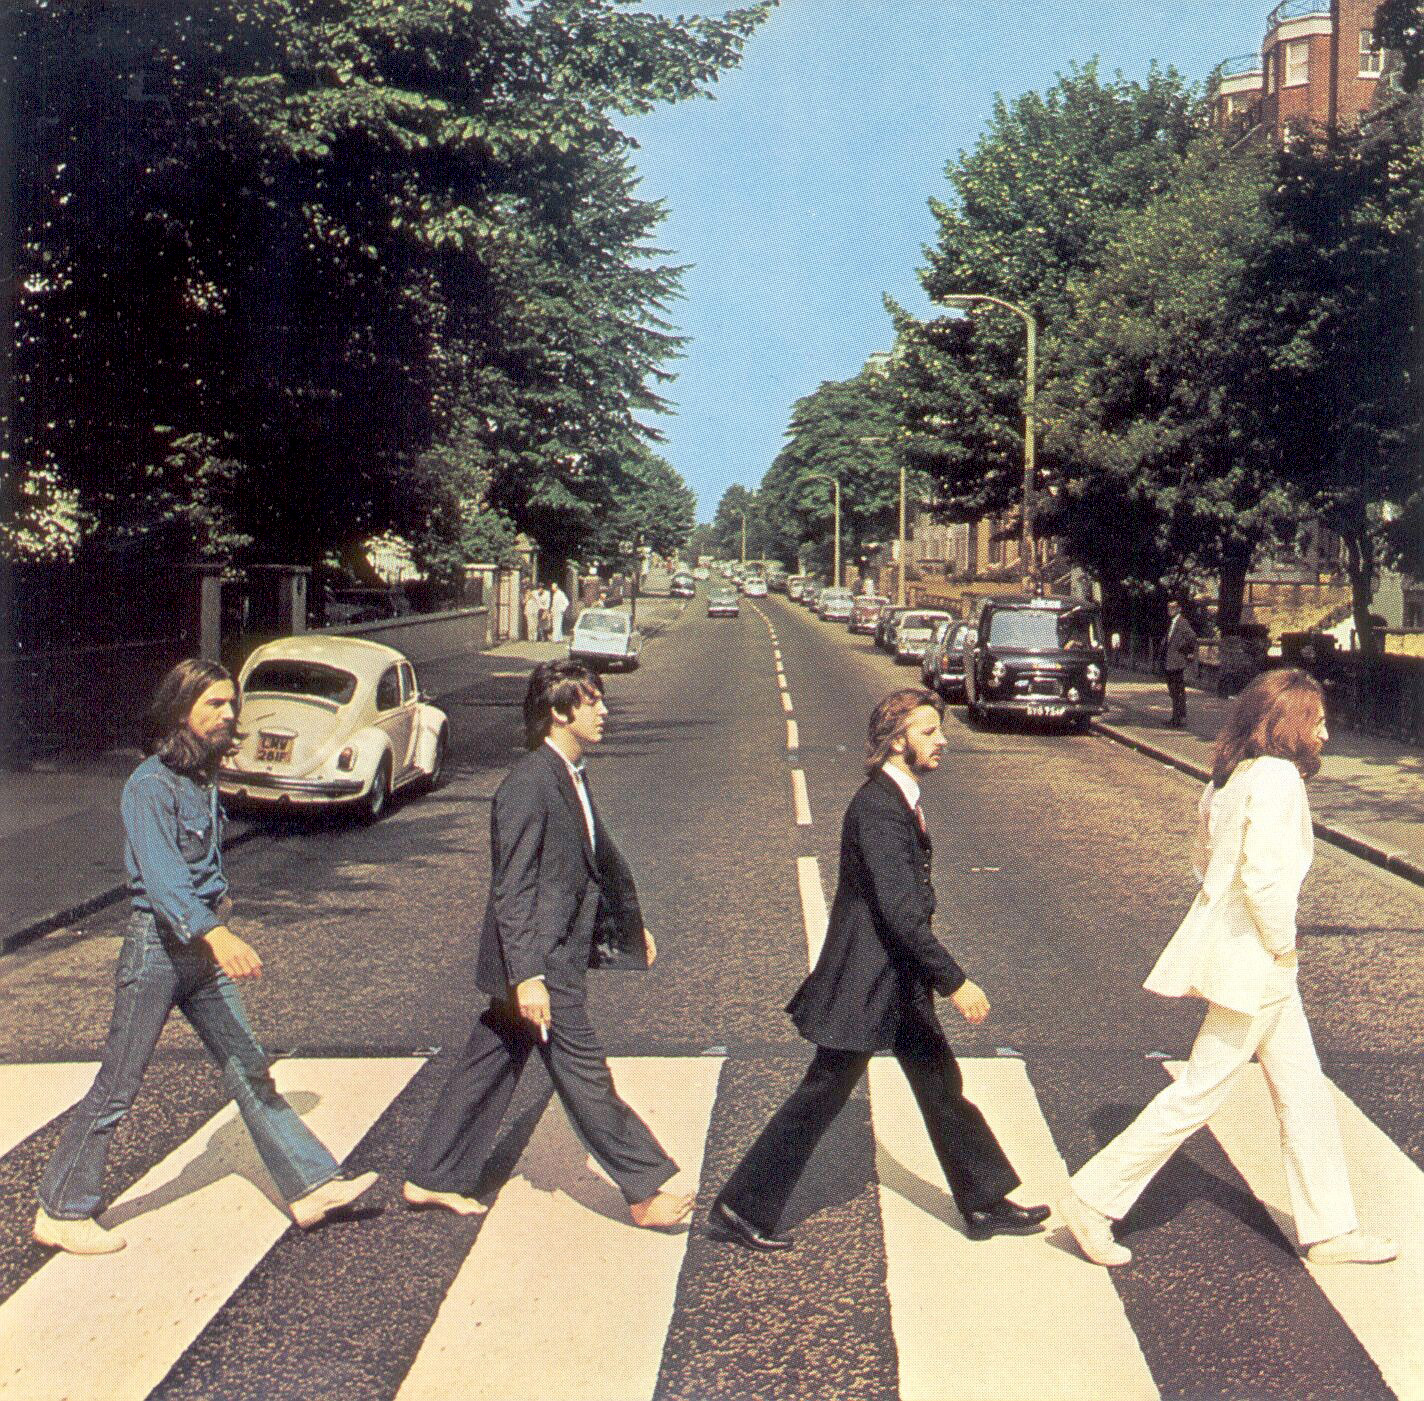 abbey-road-alafoto